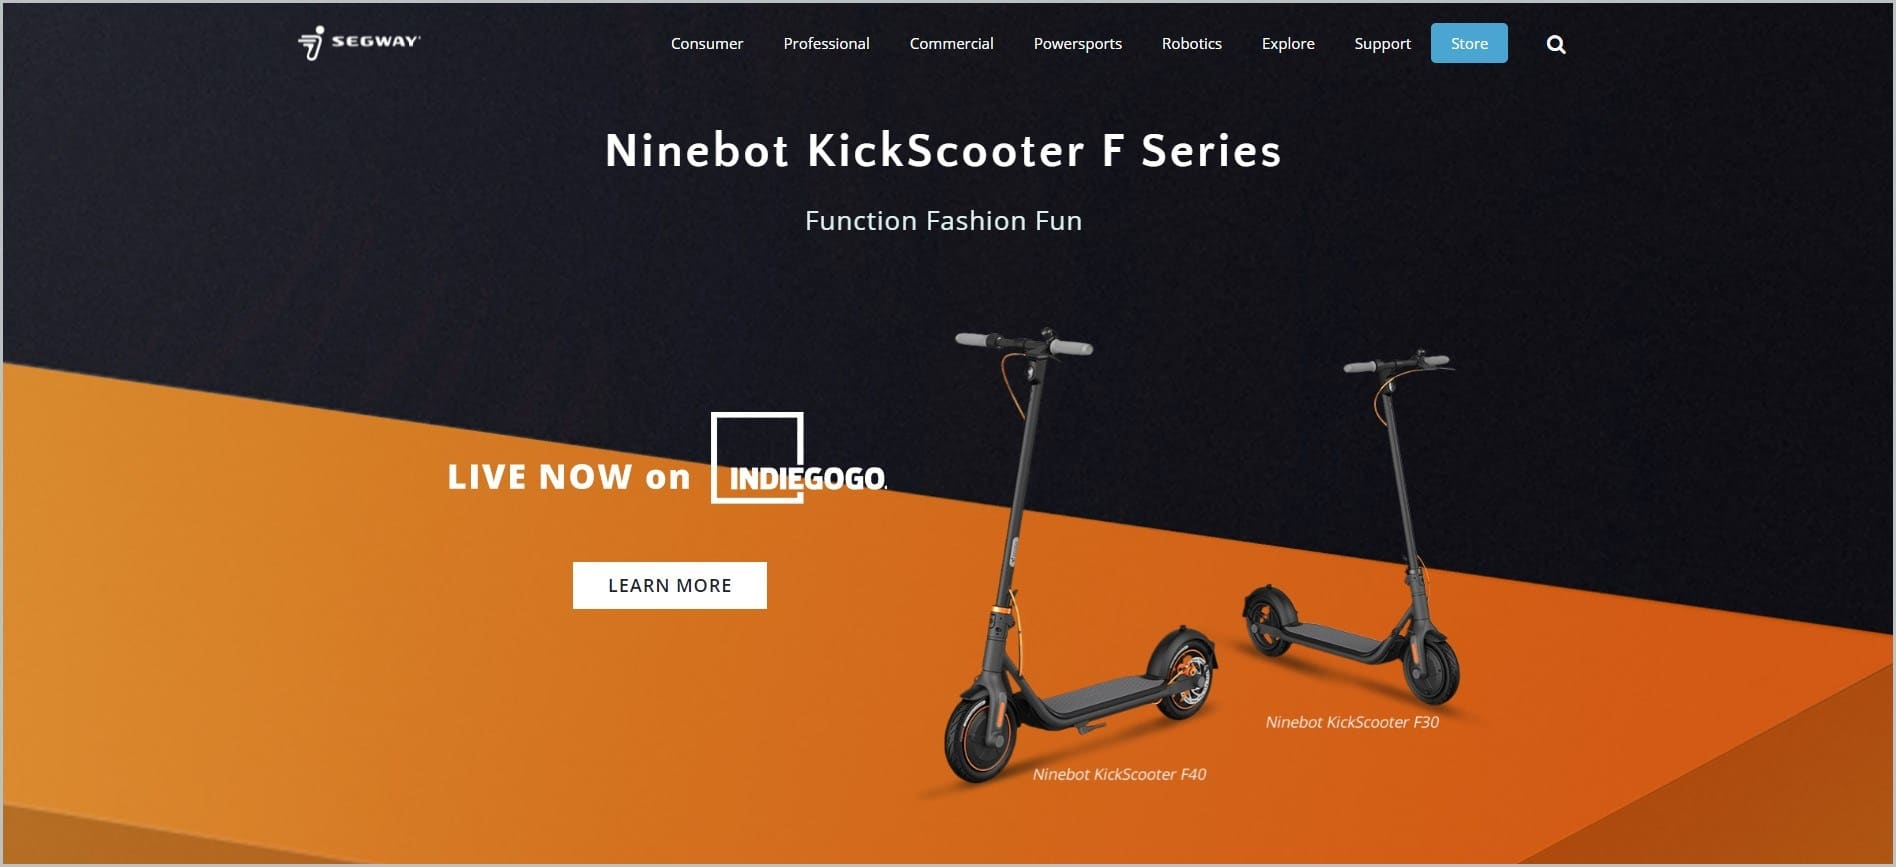 screenshot of Segway homepage, with black header with the website's name and main navigation menu, it features images of their Ninebot KickScooter F Series